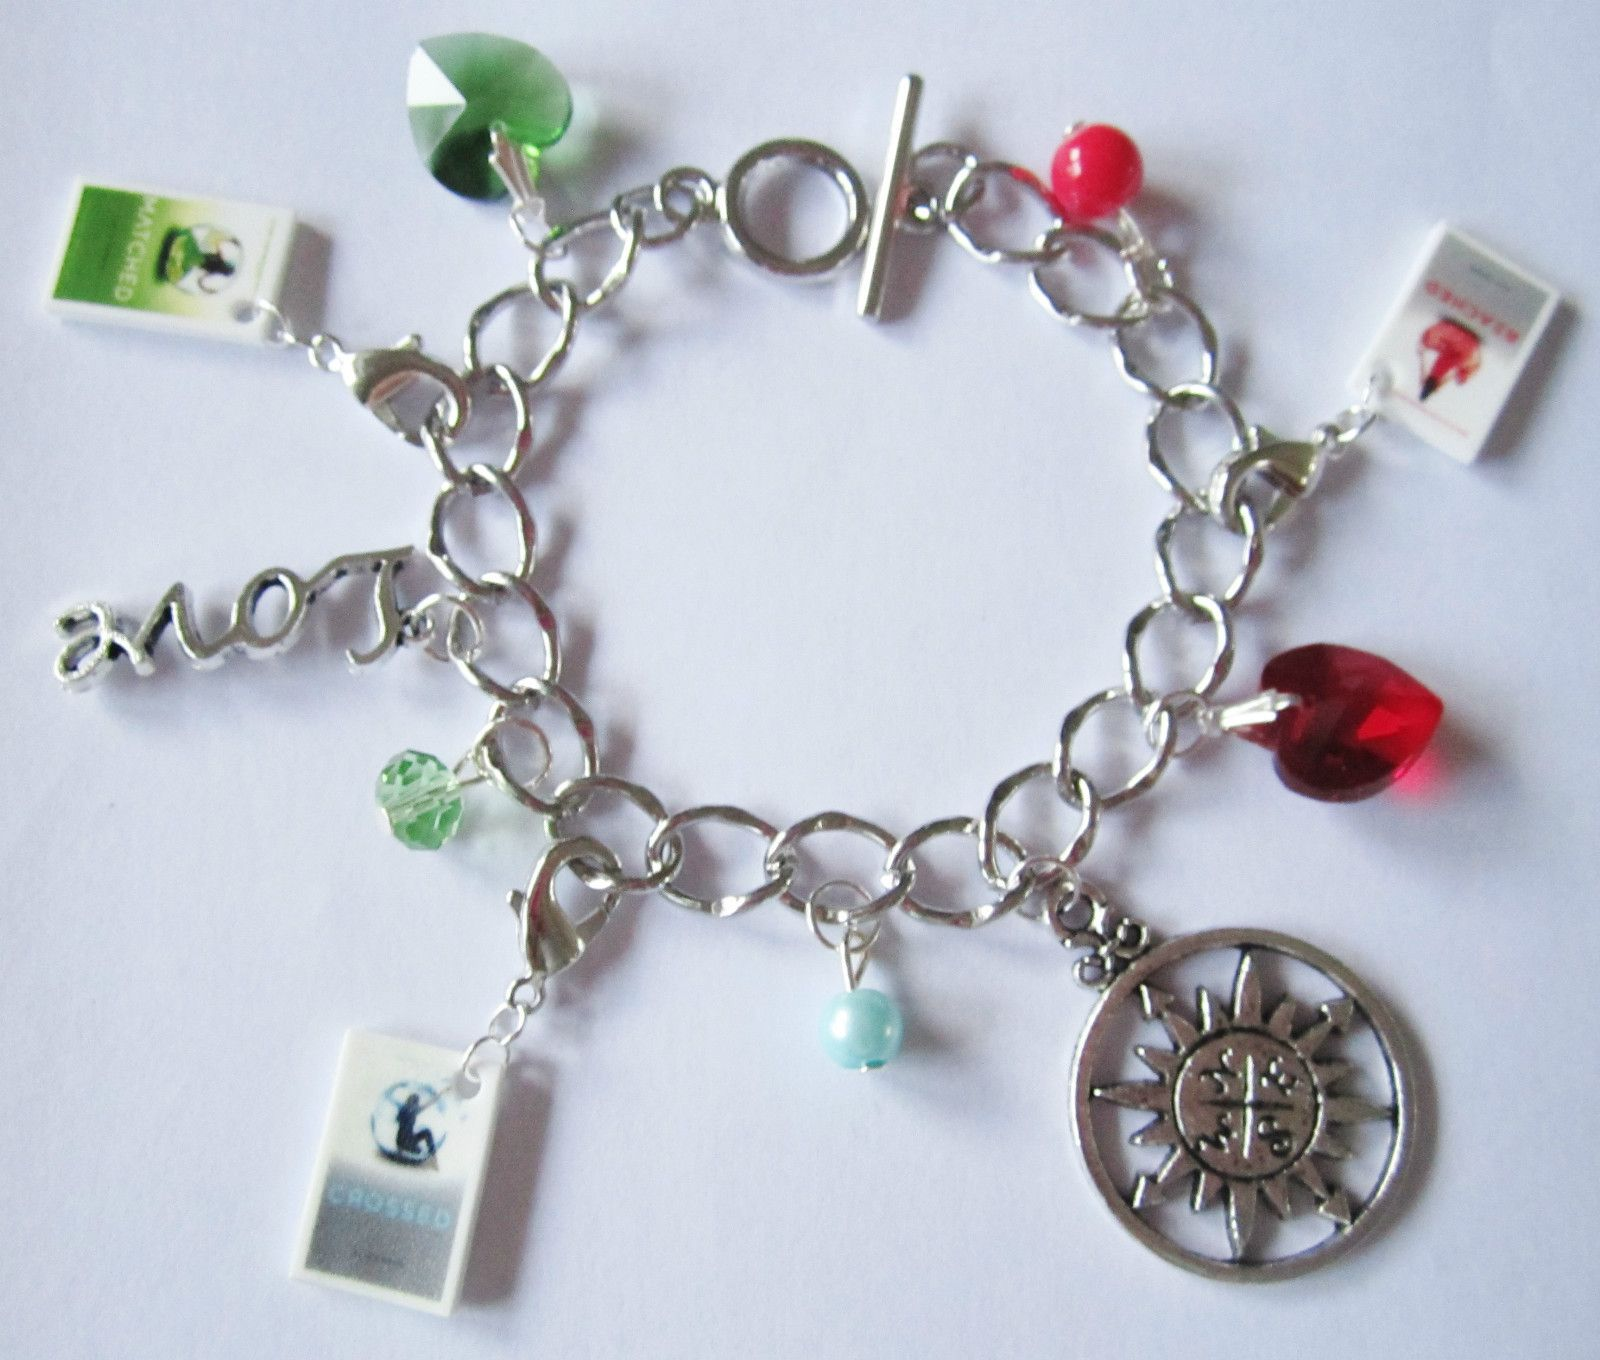 Matched Trilogy Charm Bracelet  So cute  Any fan of the book